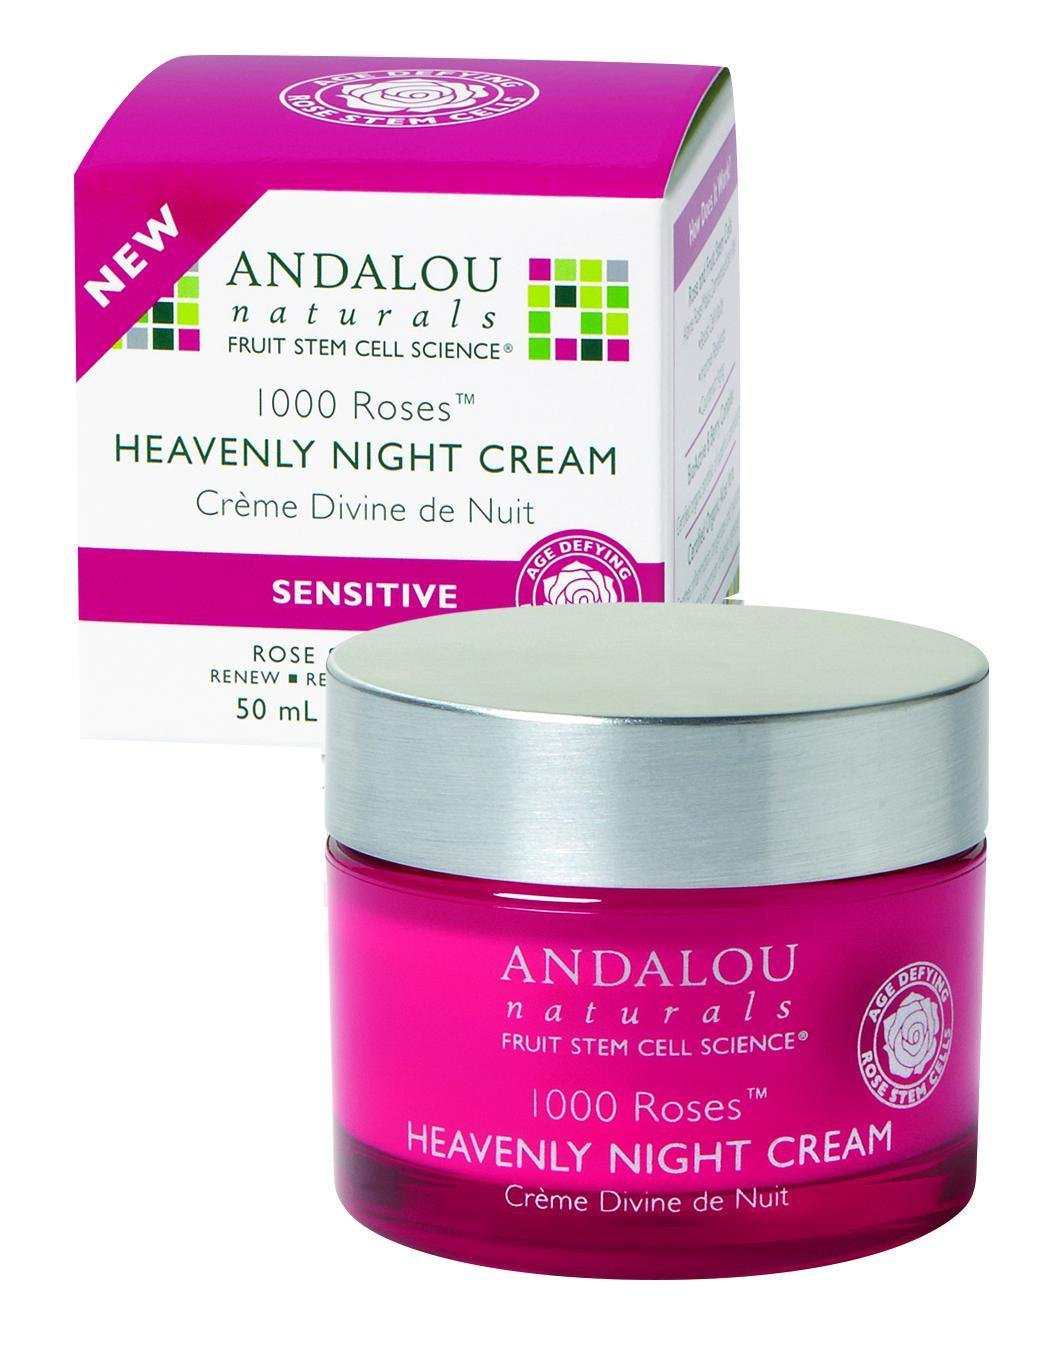 Andalou Naturals Heavenly Night Cream 1.7 Spasm price - Roses Oz Large discharge sale 1000